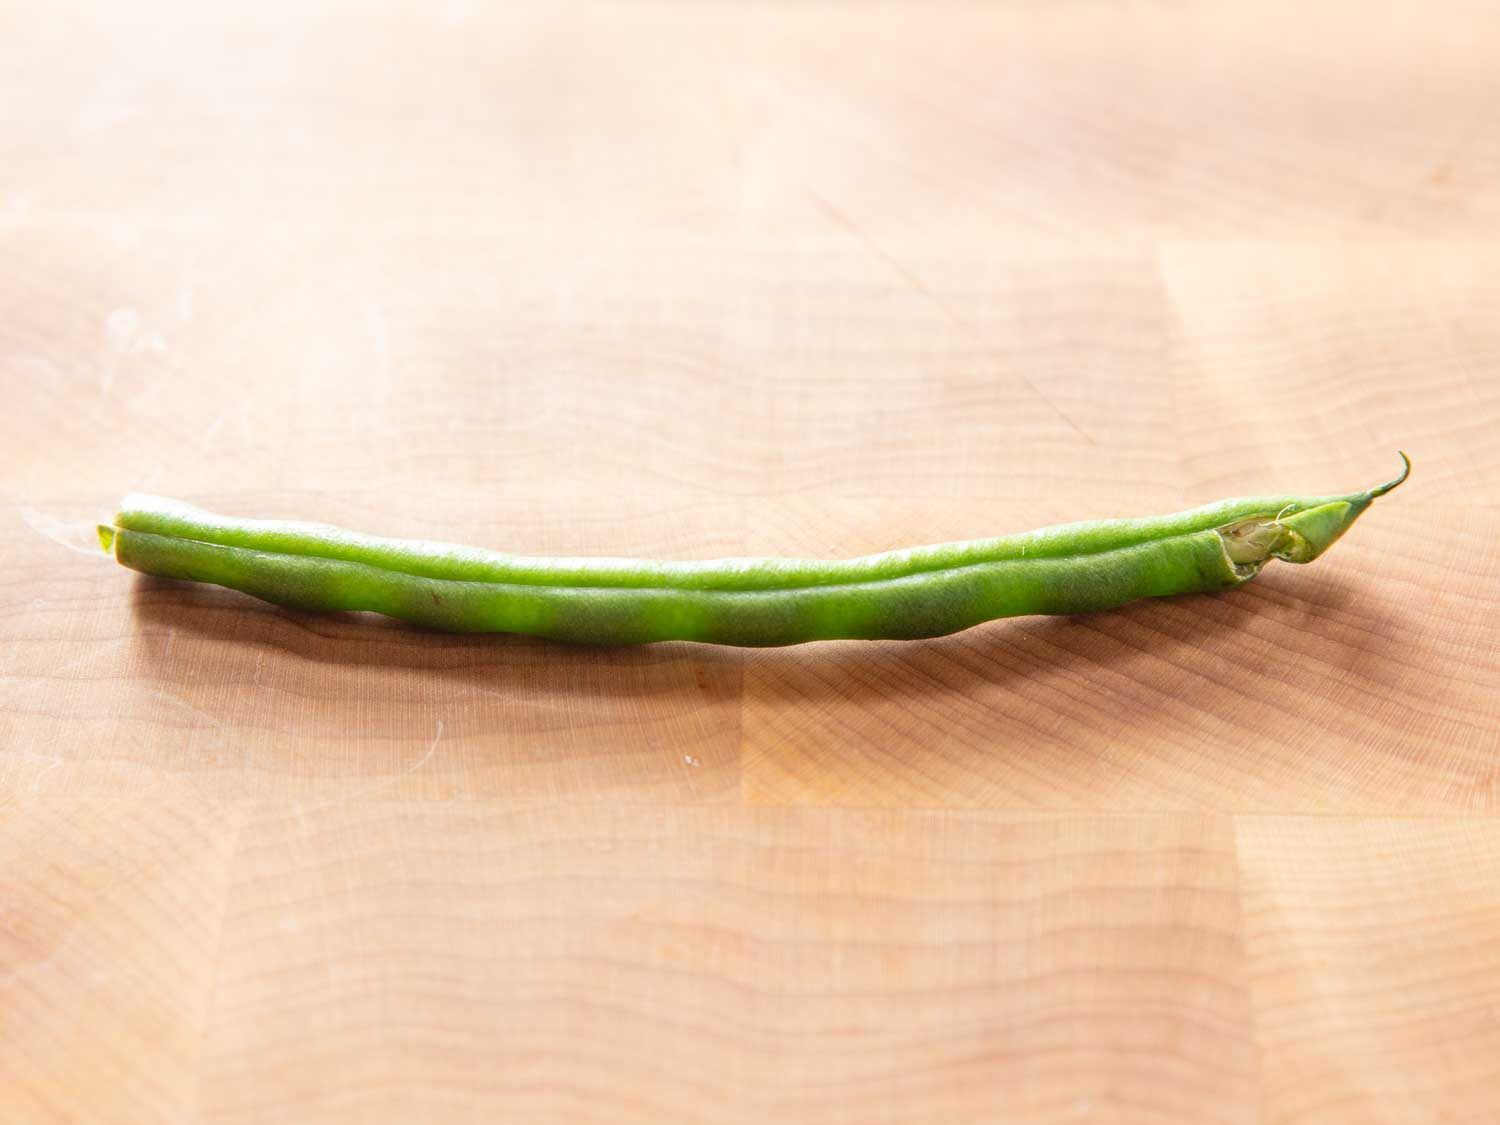 Closeup of a green bean that needs to be trimmed at both ends because it has been damaged at the bottom.